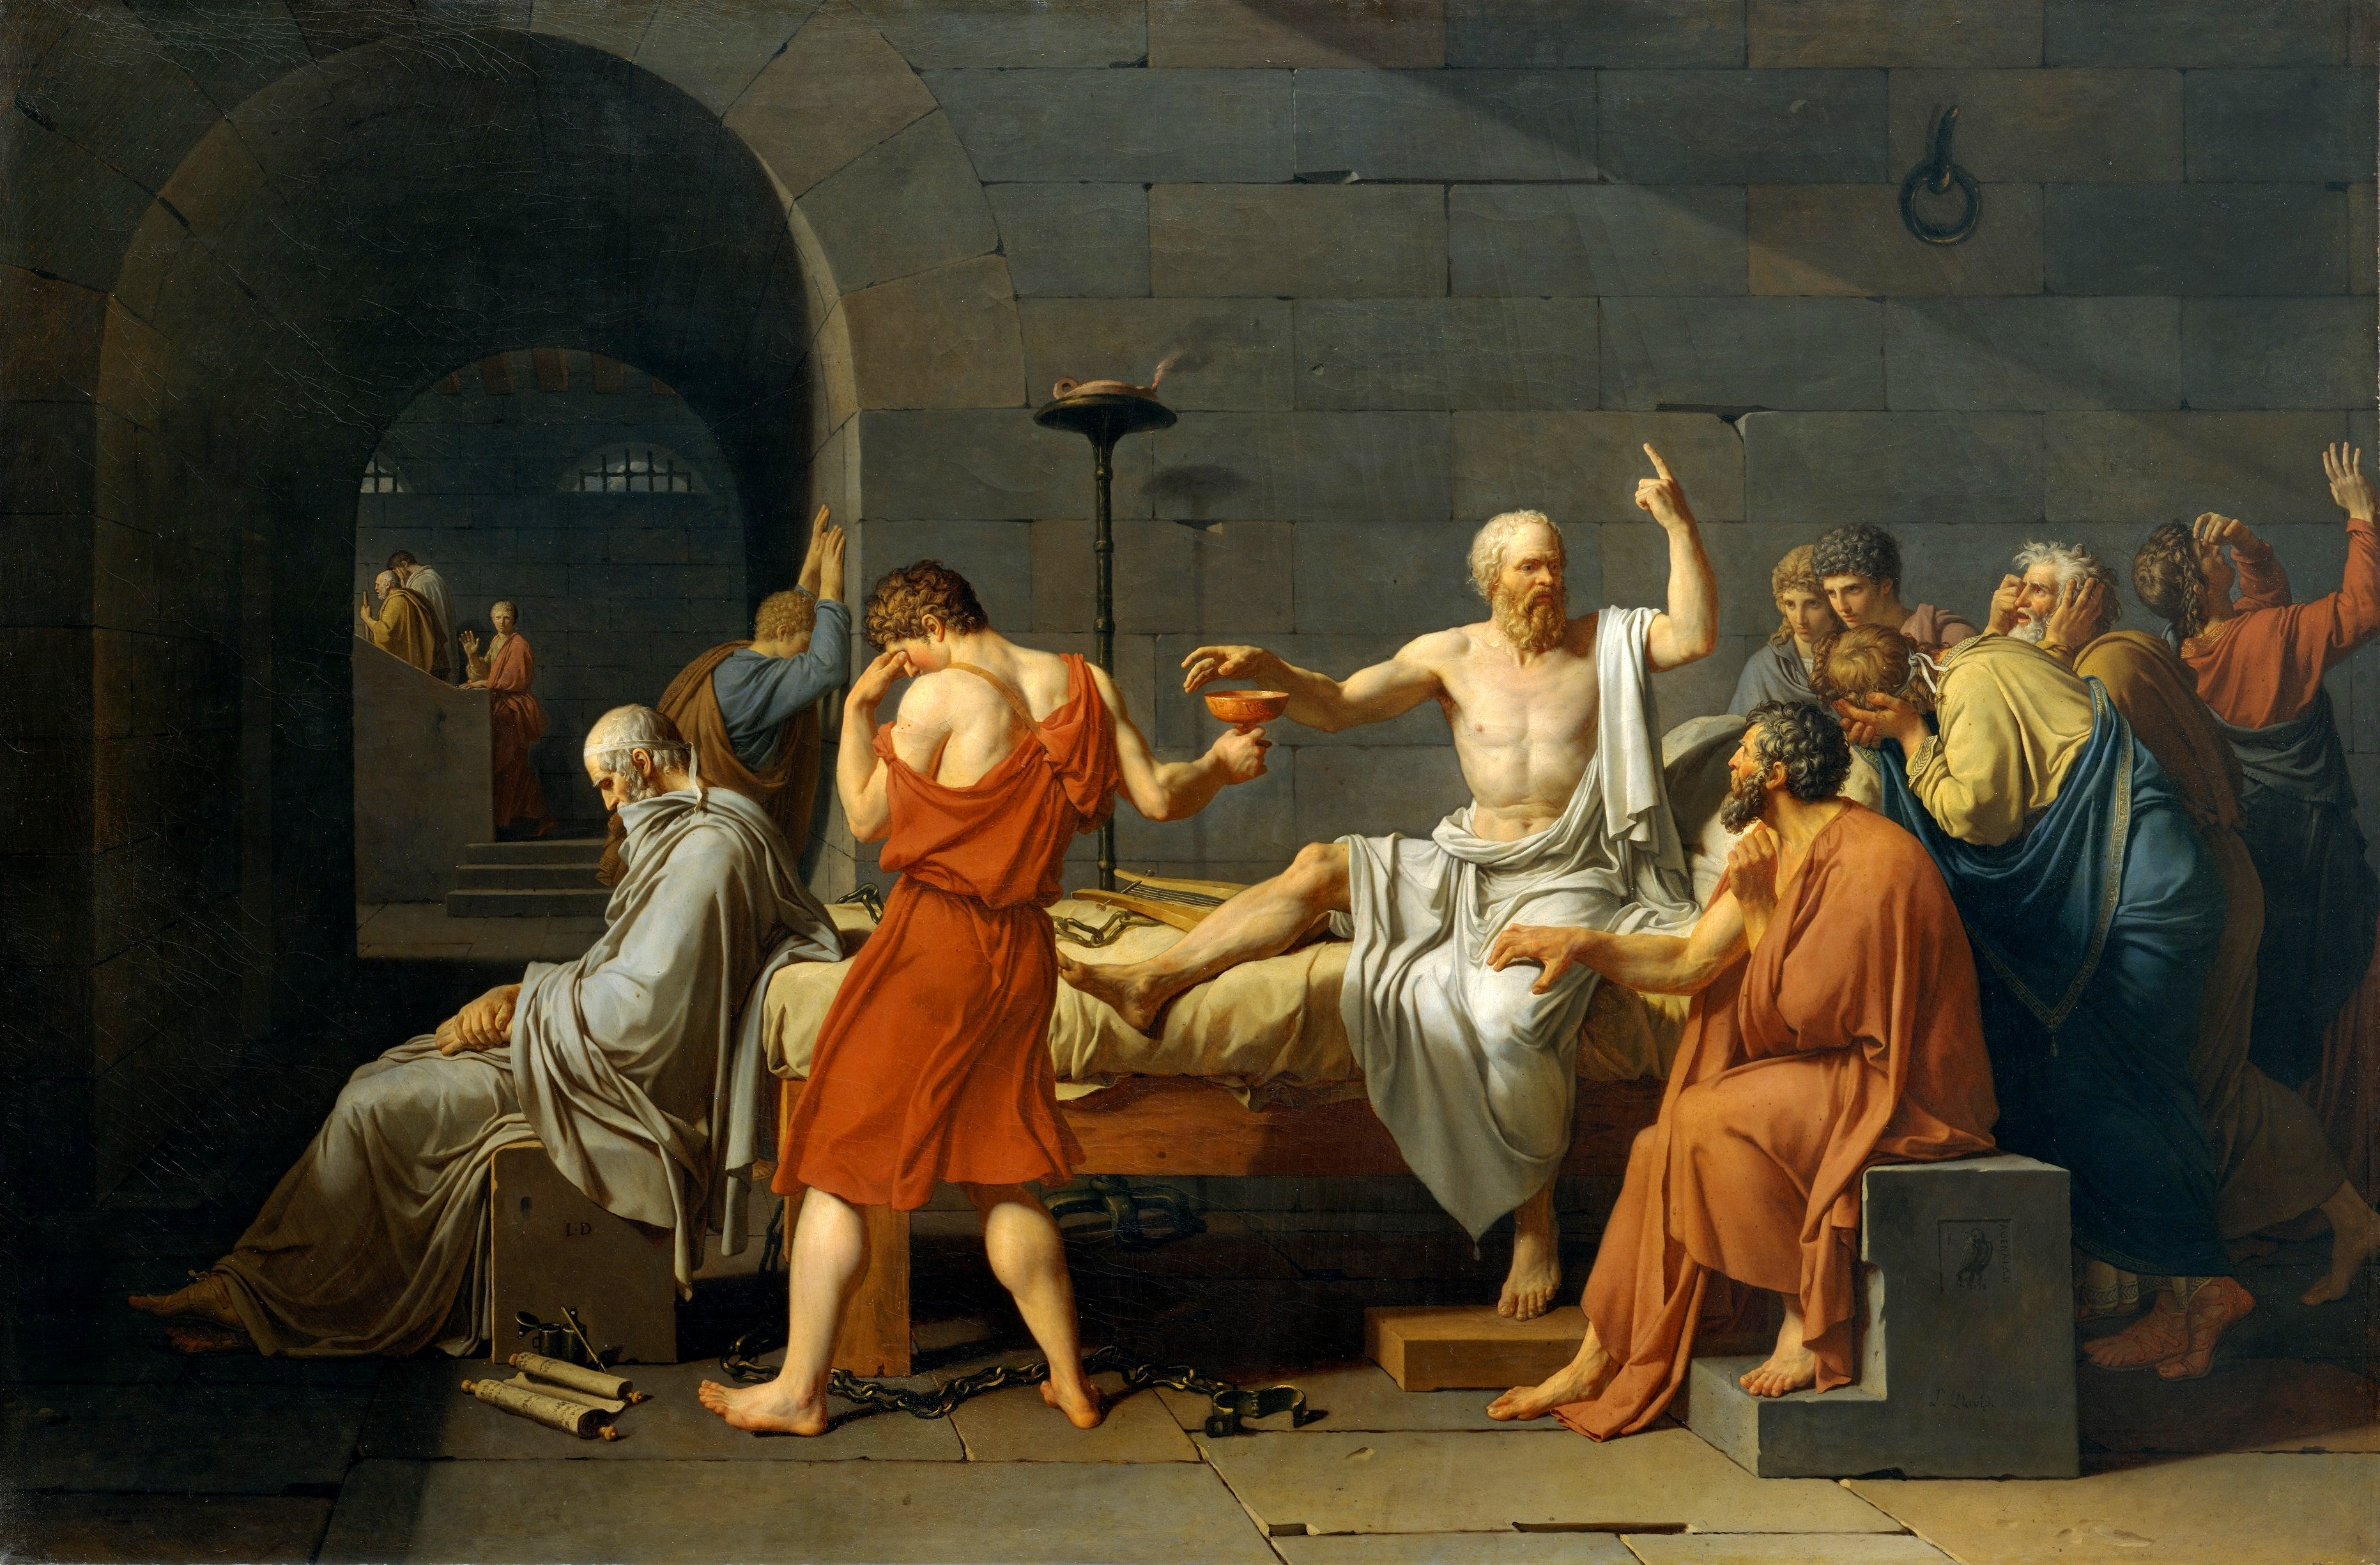 an overview of the role of socrates on death After socrates's death, plato traveled for 12 years throughout the mediterranean region, studying mathematics with the pythagoreans in italy, and geometry, geology, astronomy and religion in egypt.